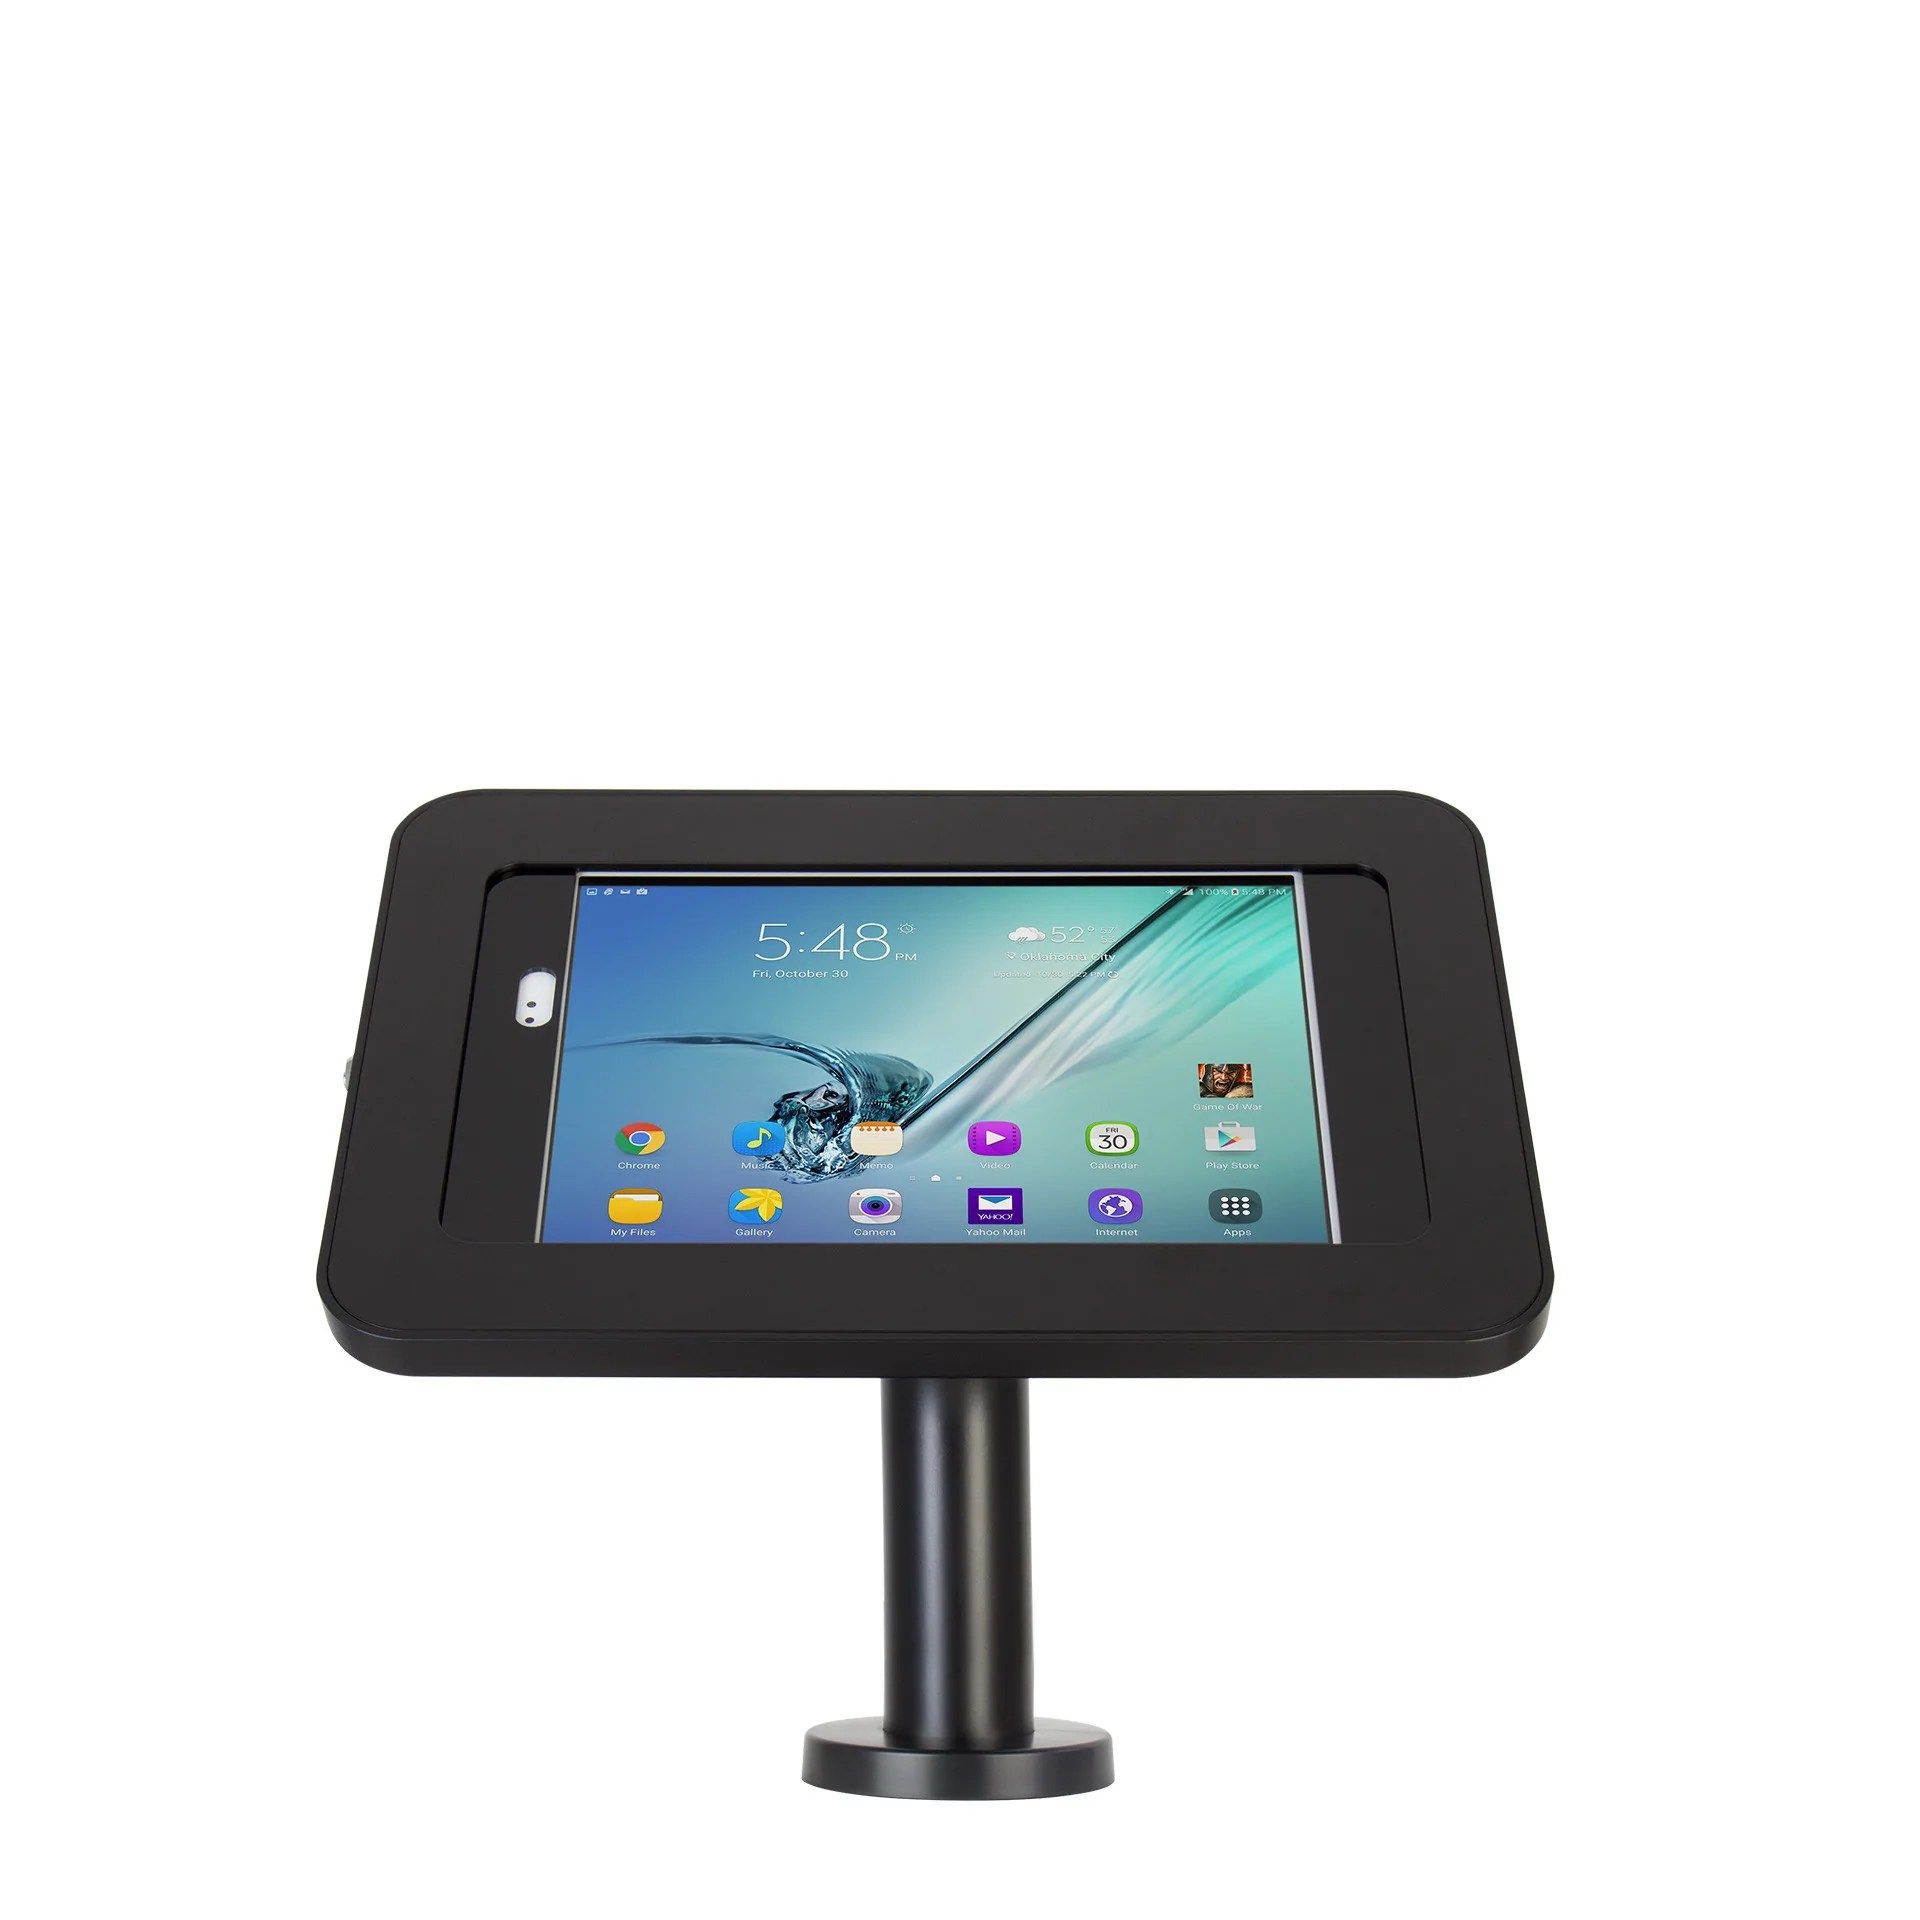 Galaxy Tab 9.7 Elevate Ii Wall Countertop Mount Kiosk For Galaxy Tab S3 S2 9 7 Black